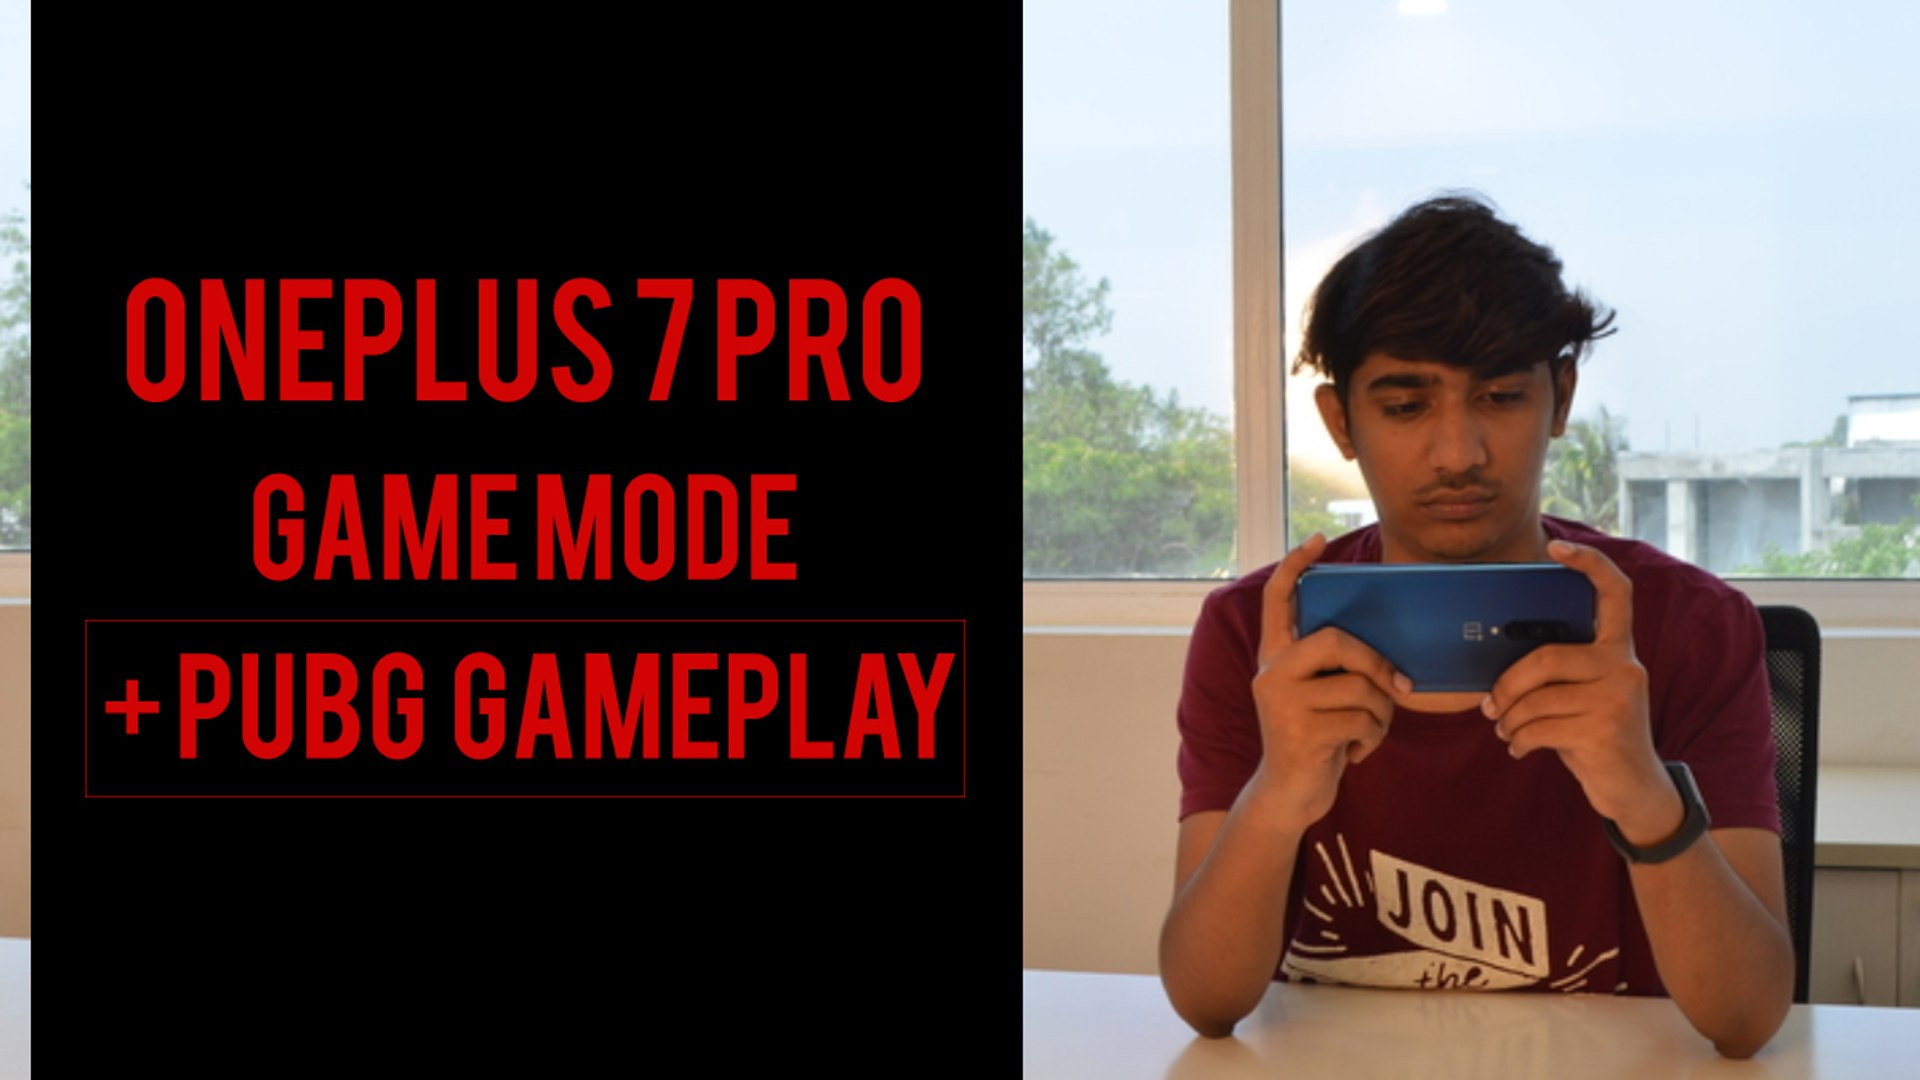 OnePlus 7 Pro gaming review on Fnatic gaming mode